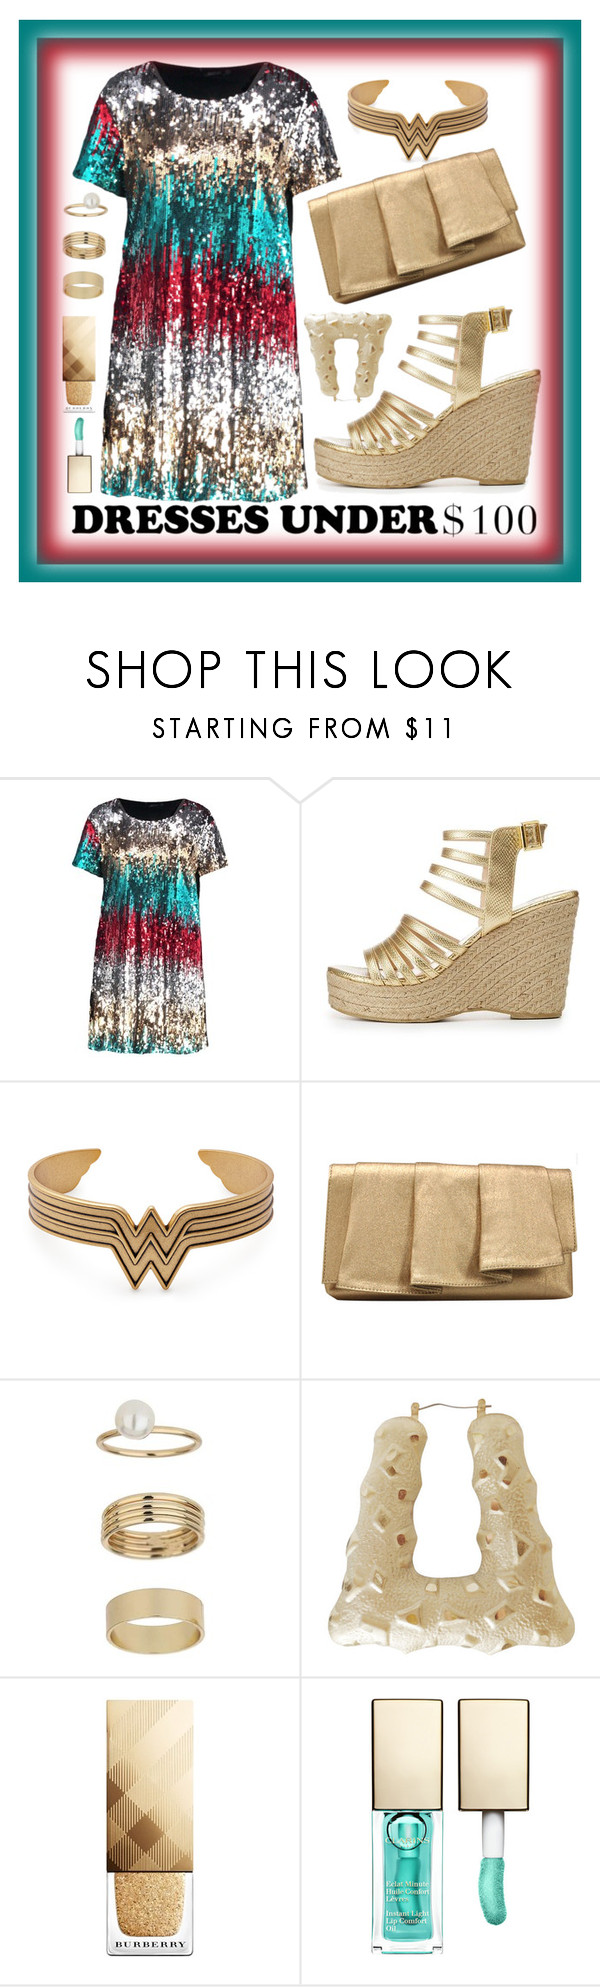 """Glitter & Gold (Plus Size)"" by jazzola-19 ❤ liked on Polyvore featuring Boohoo, Qupid, La Regale, Miss Selfridge, Burberry and Clarins"